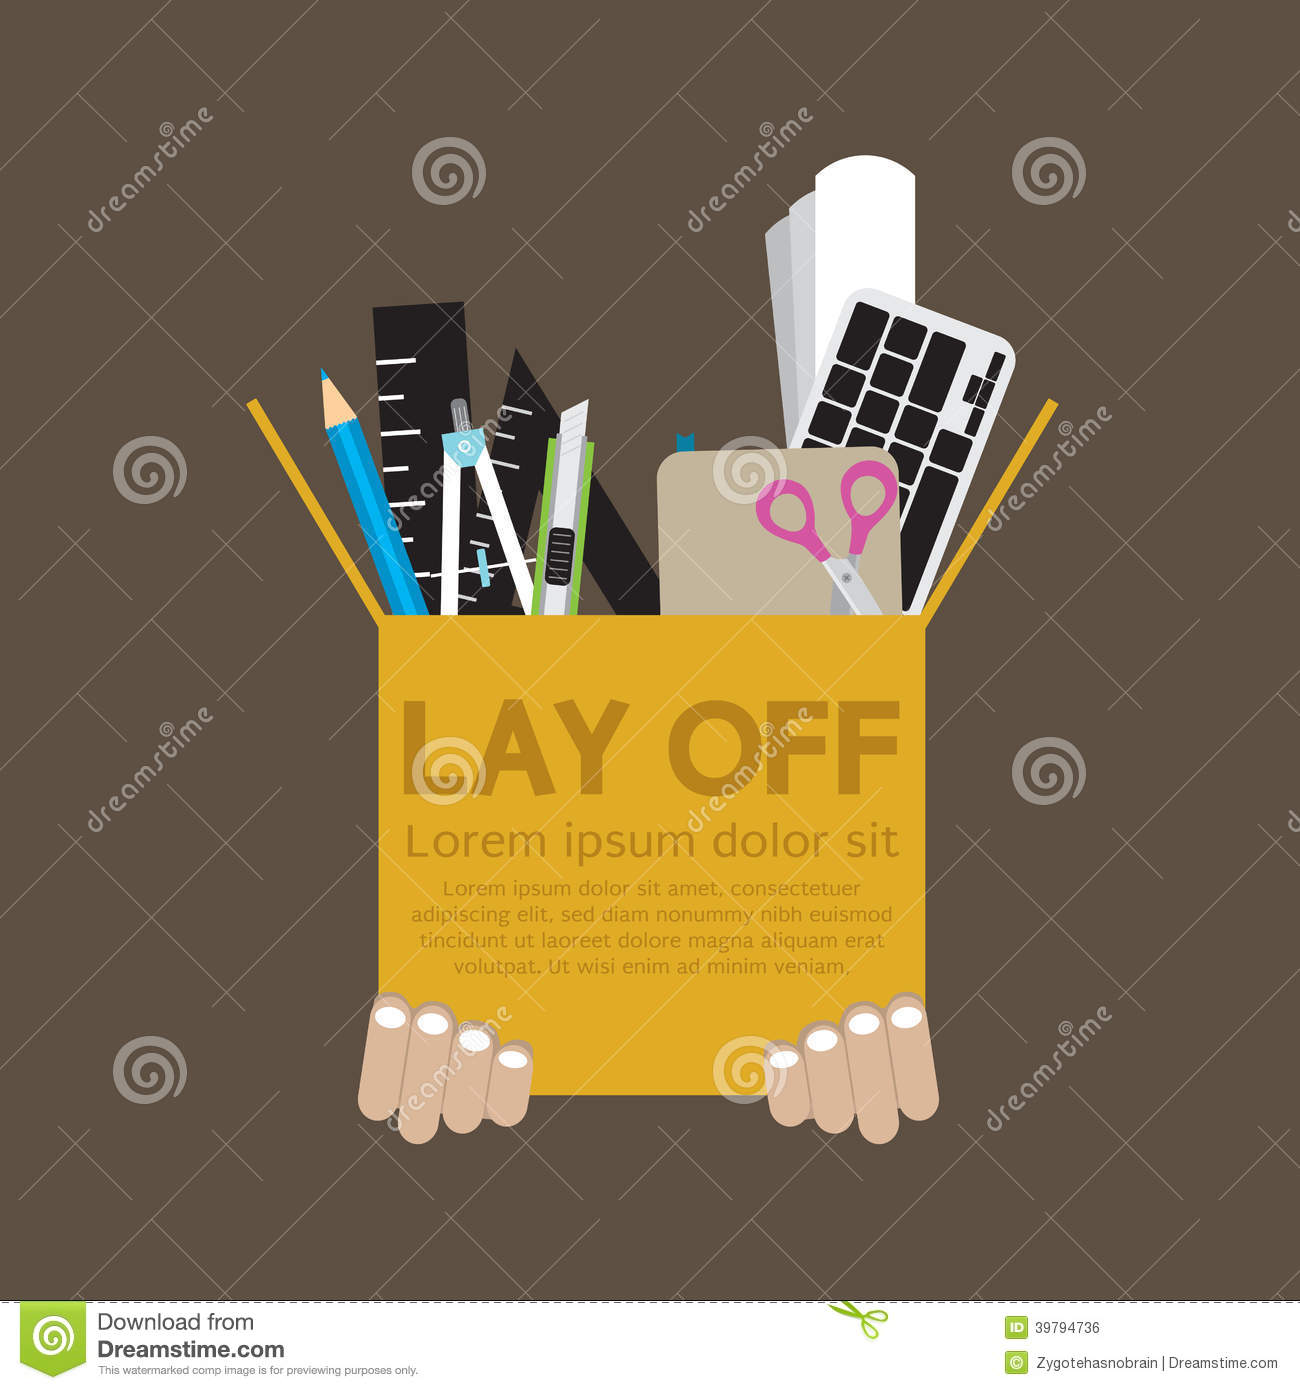 Laid off unvested stock options